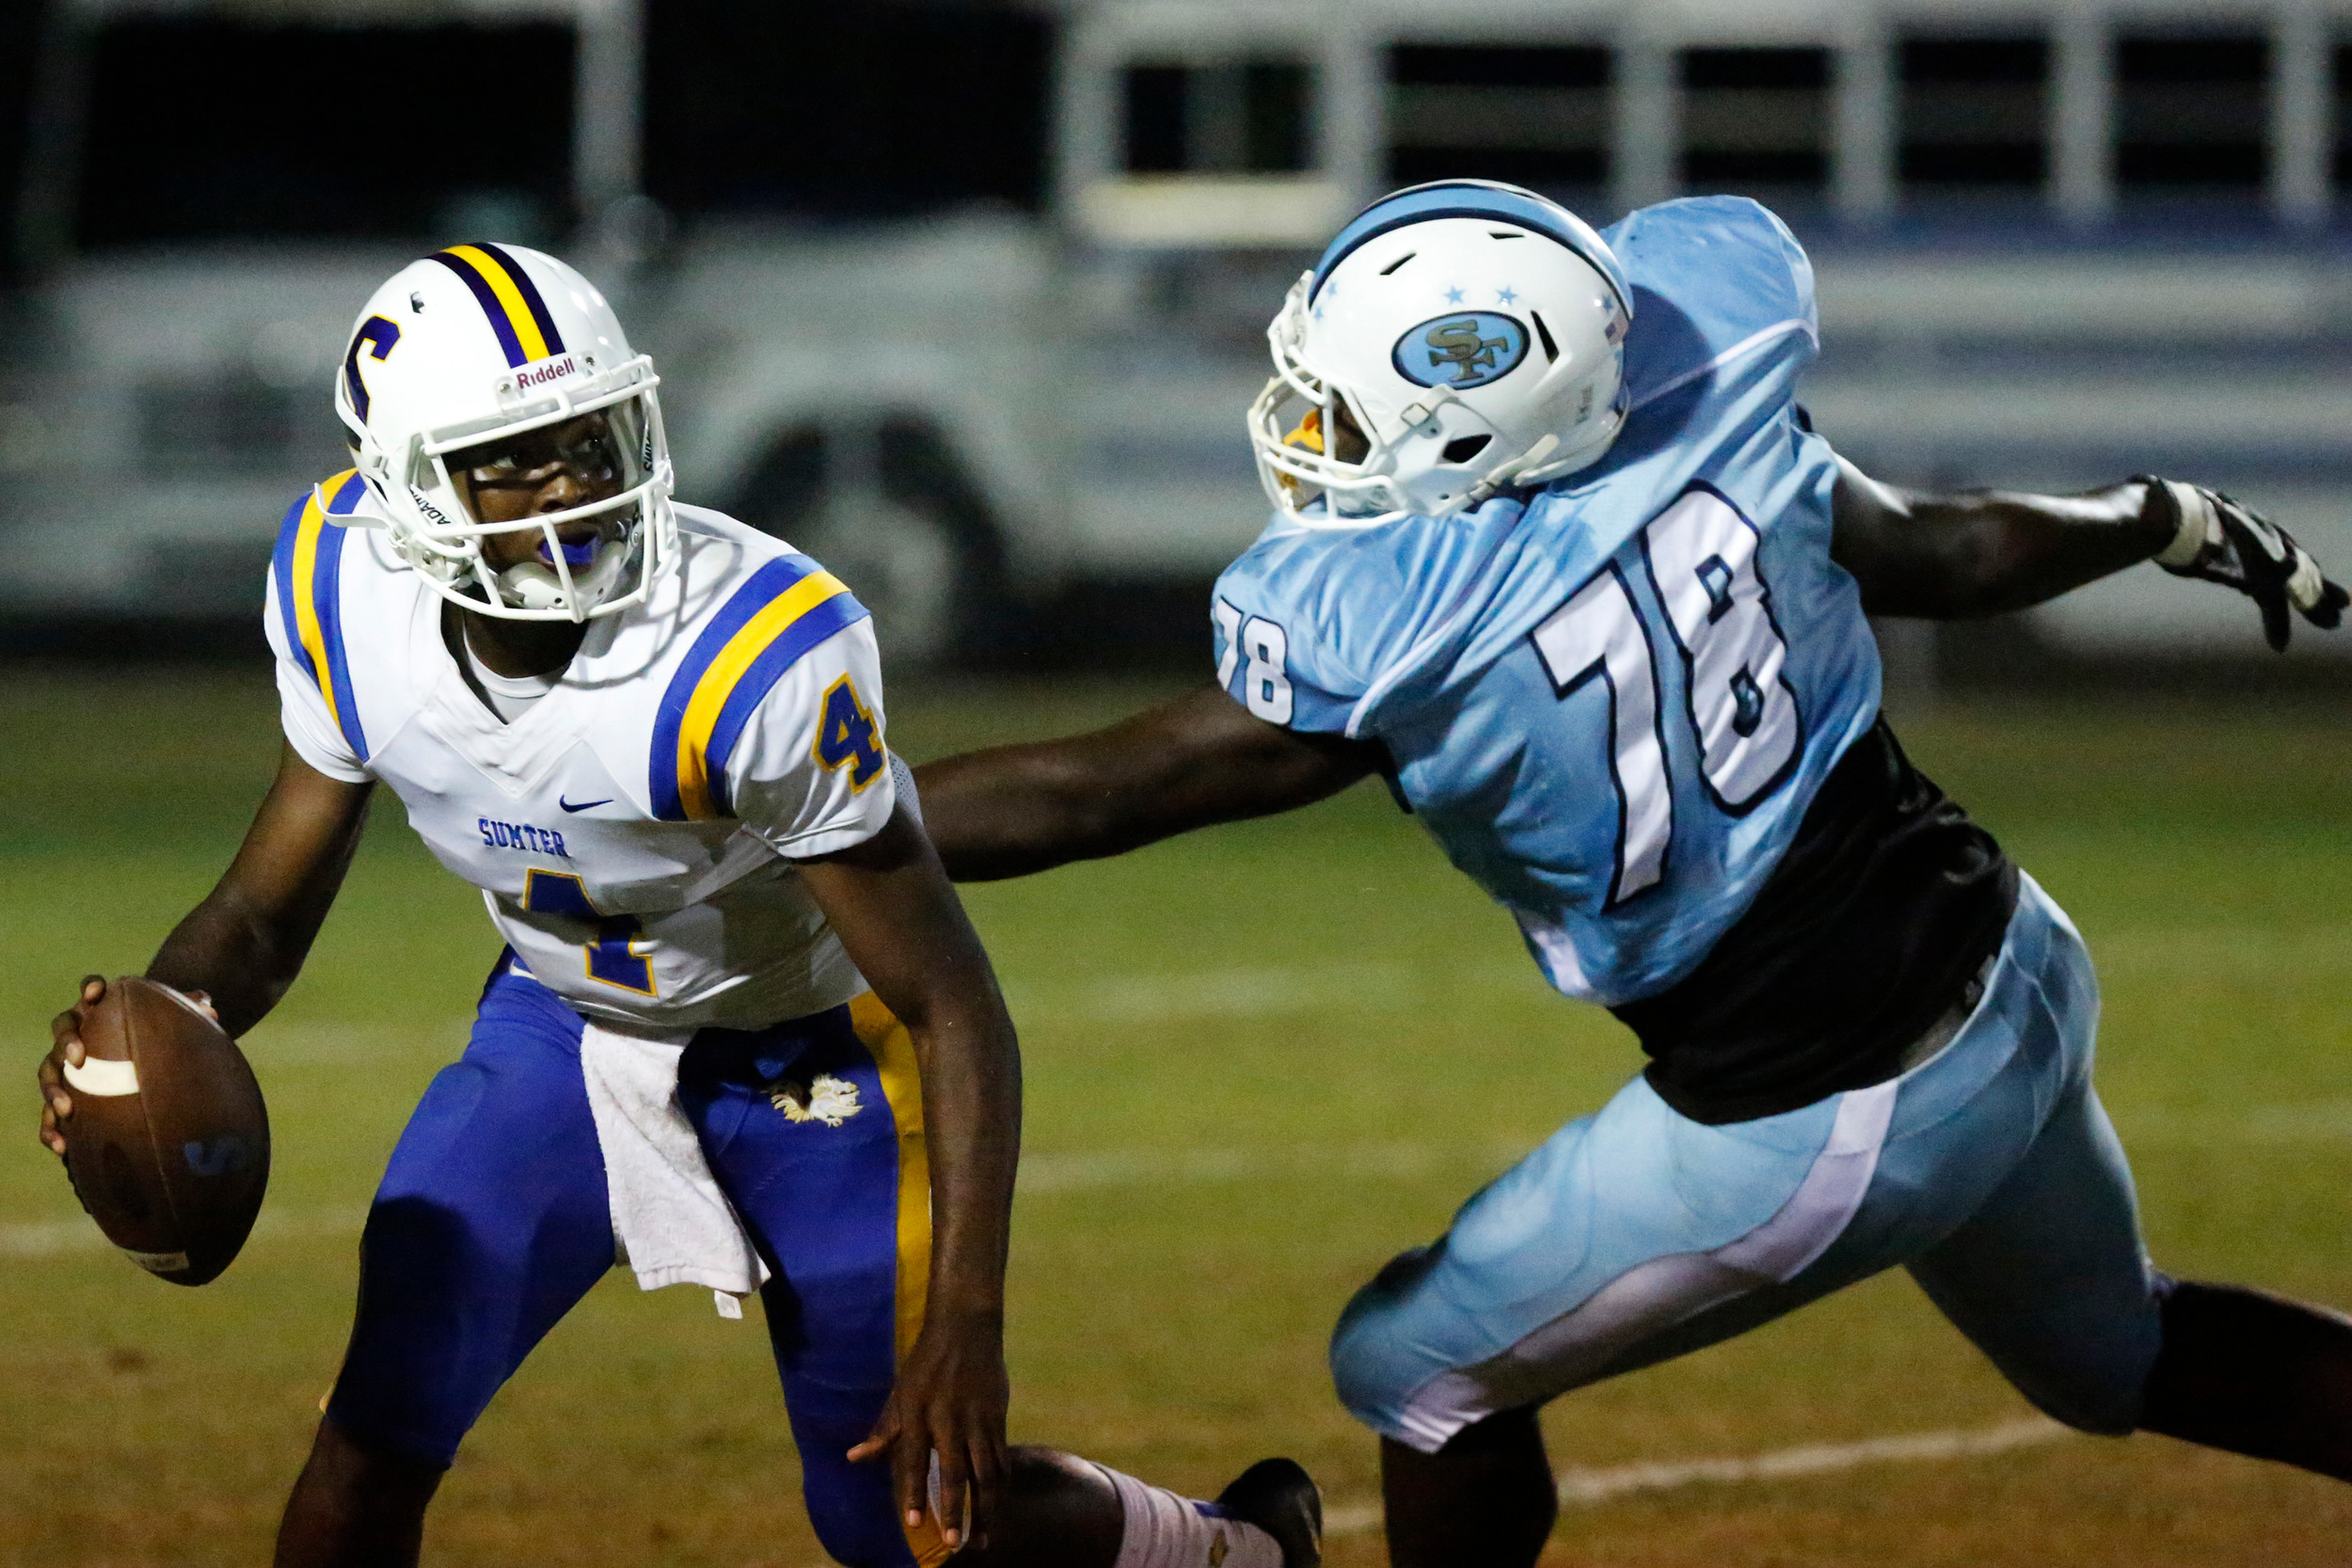 Sumter's Zykiem Jackson (4) tries to avoid South Florence's Sokova McDuffie during the Gamecocks' 31-20 victory on Friday at Florence's Memorial Stadium. Jackson ran for 117 yards and threw two touchdowns in the win.